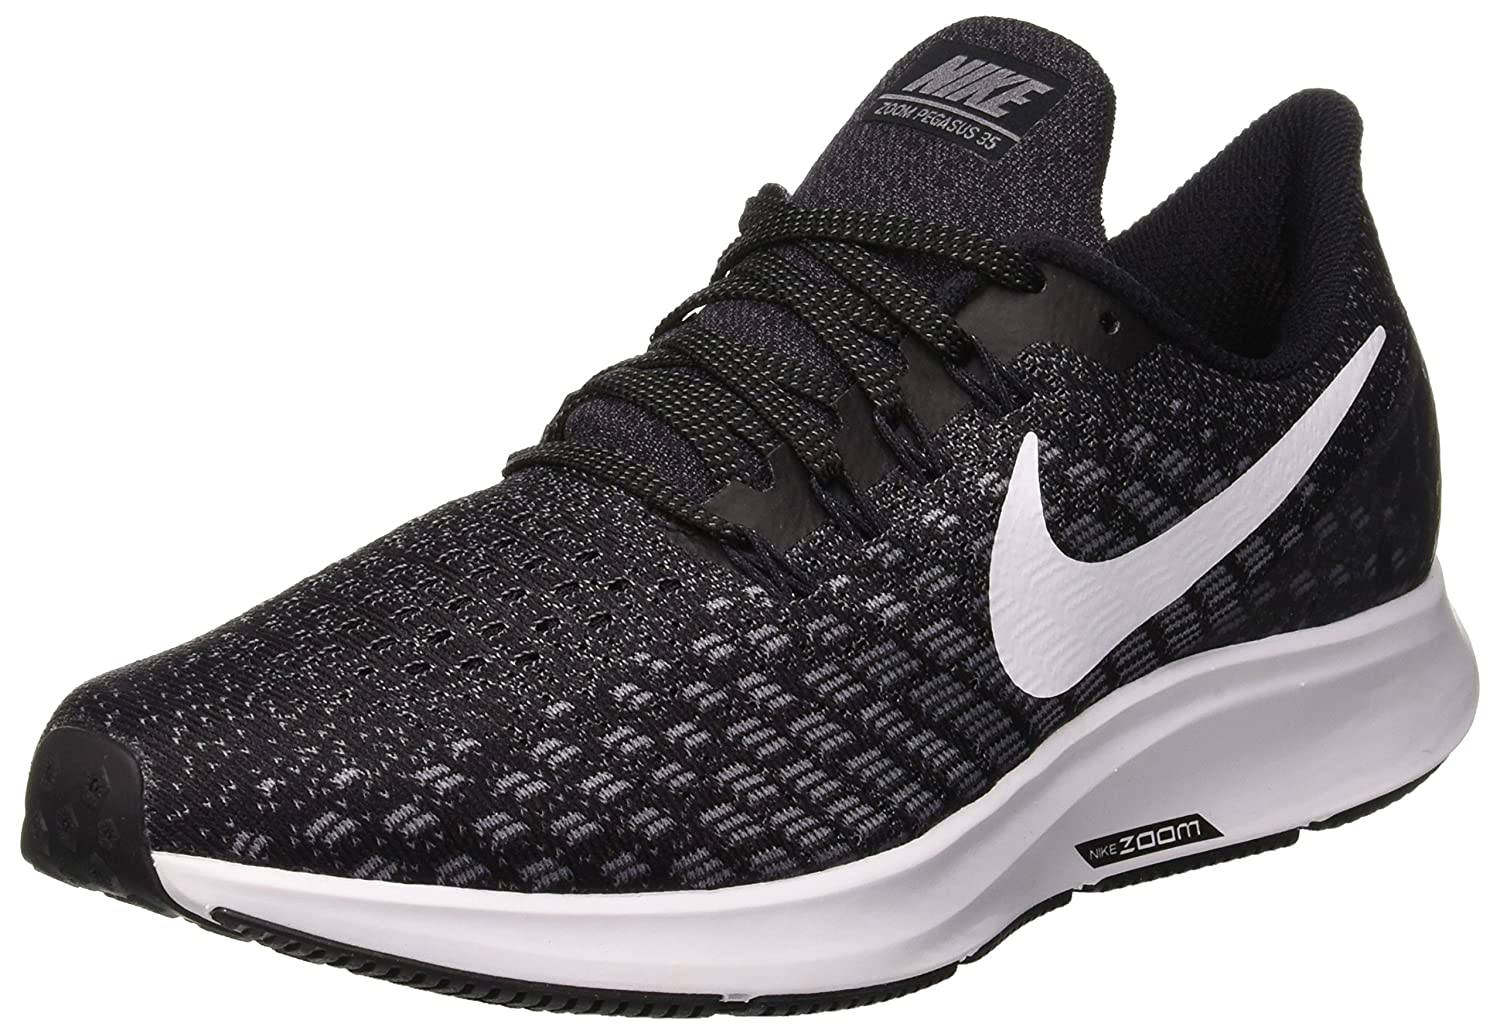 half off 3b21b b0c19 Amazon.com   Nike Womens Air Zoom Pegasus 35 Running Shoes   Shoes